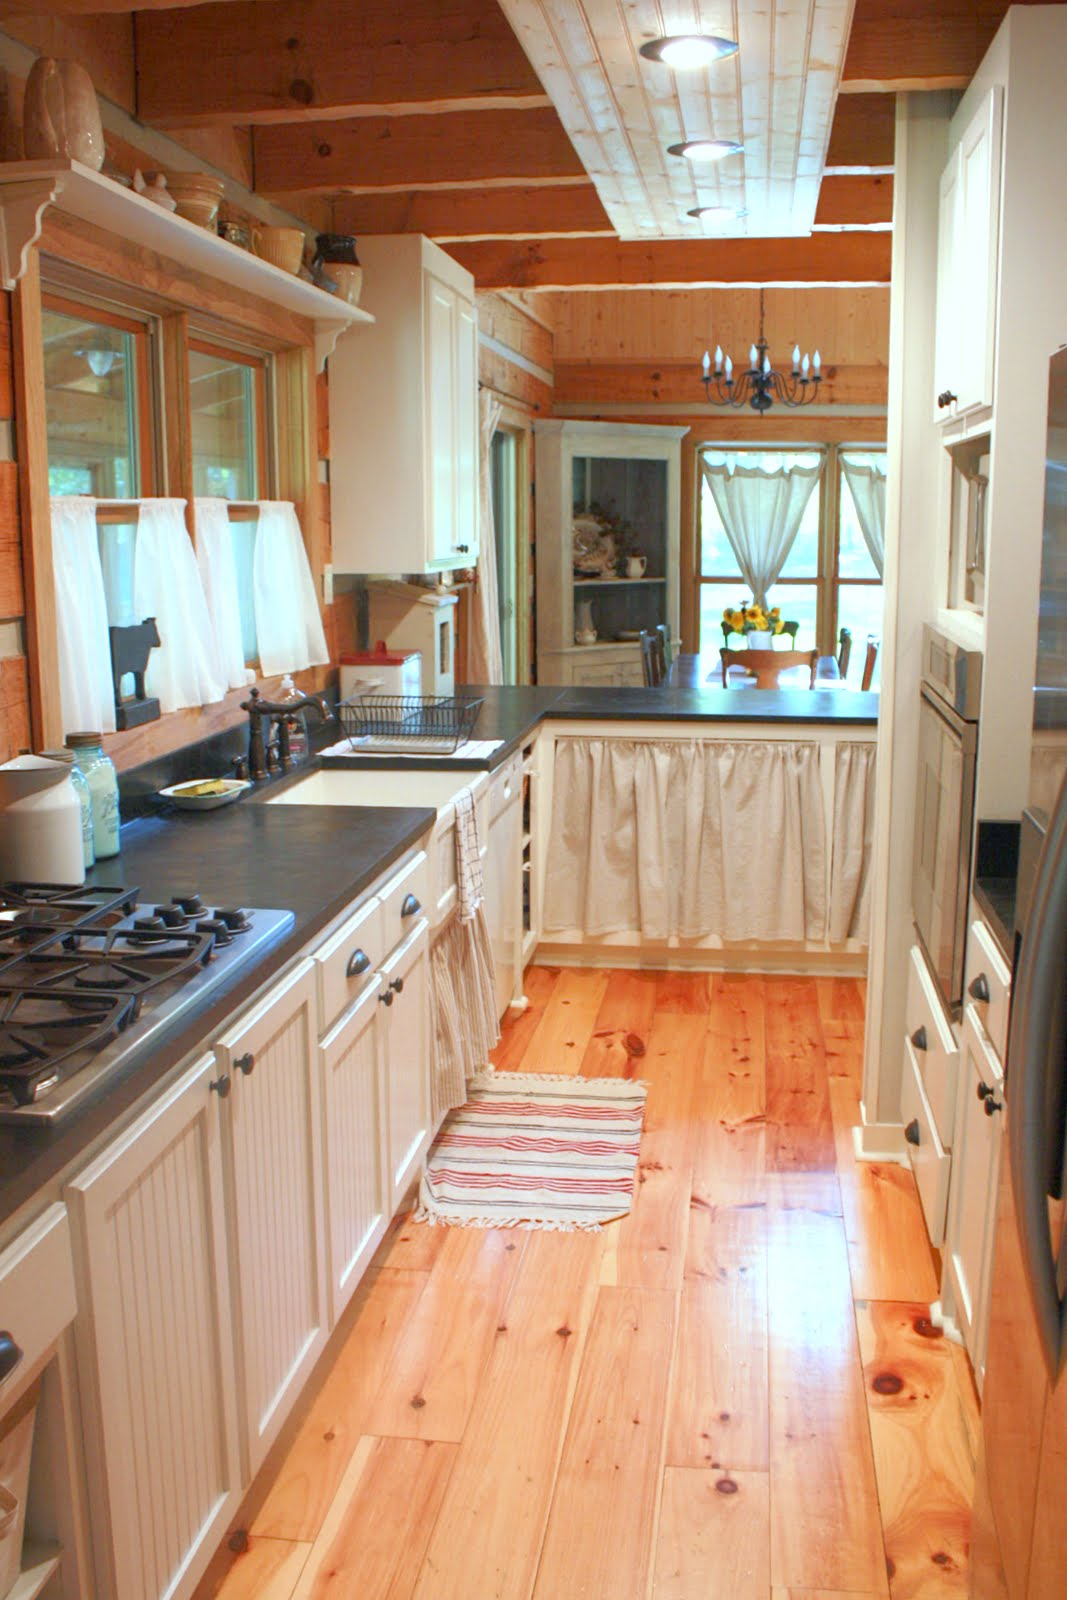 Carolina country living house tour the kitchen for View kitchens ideas